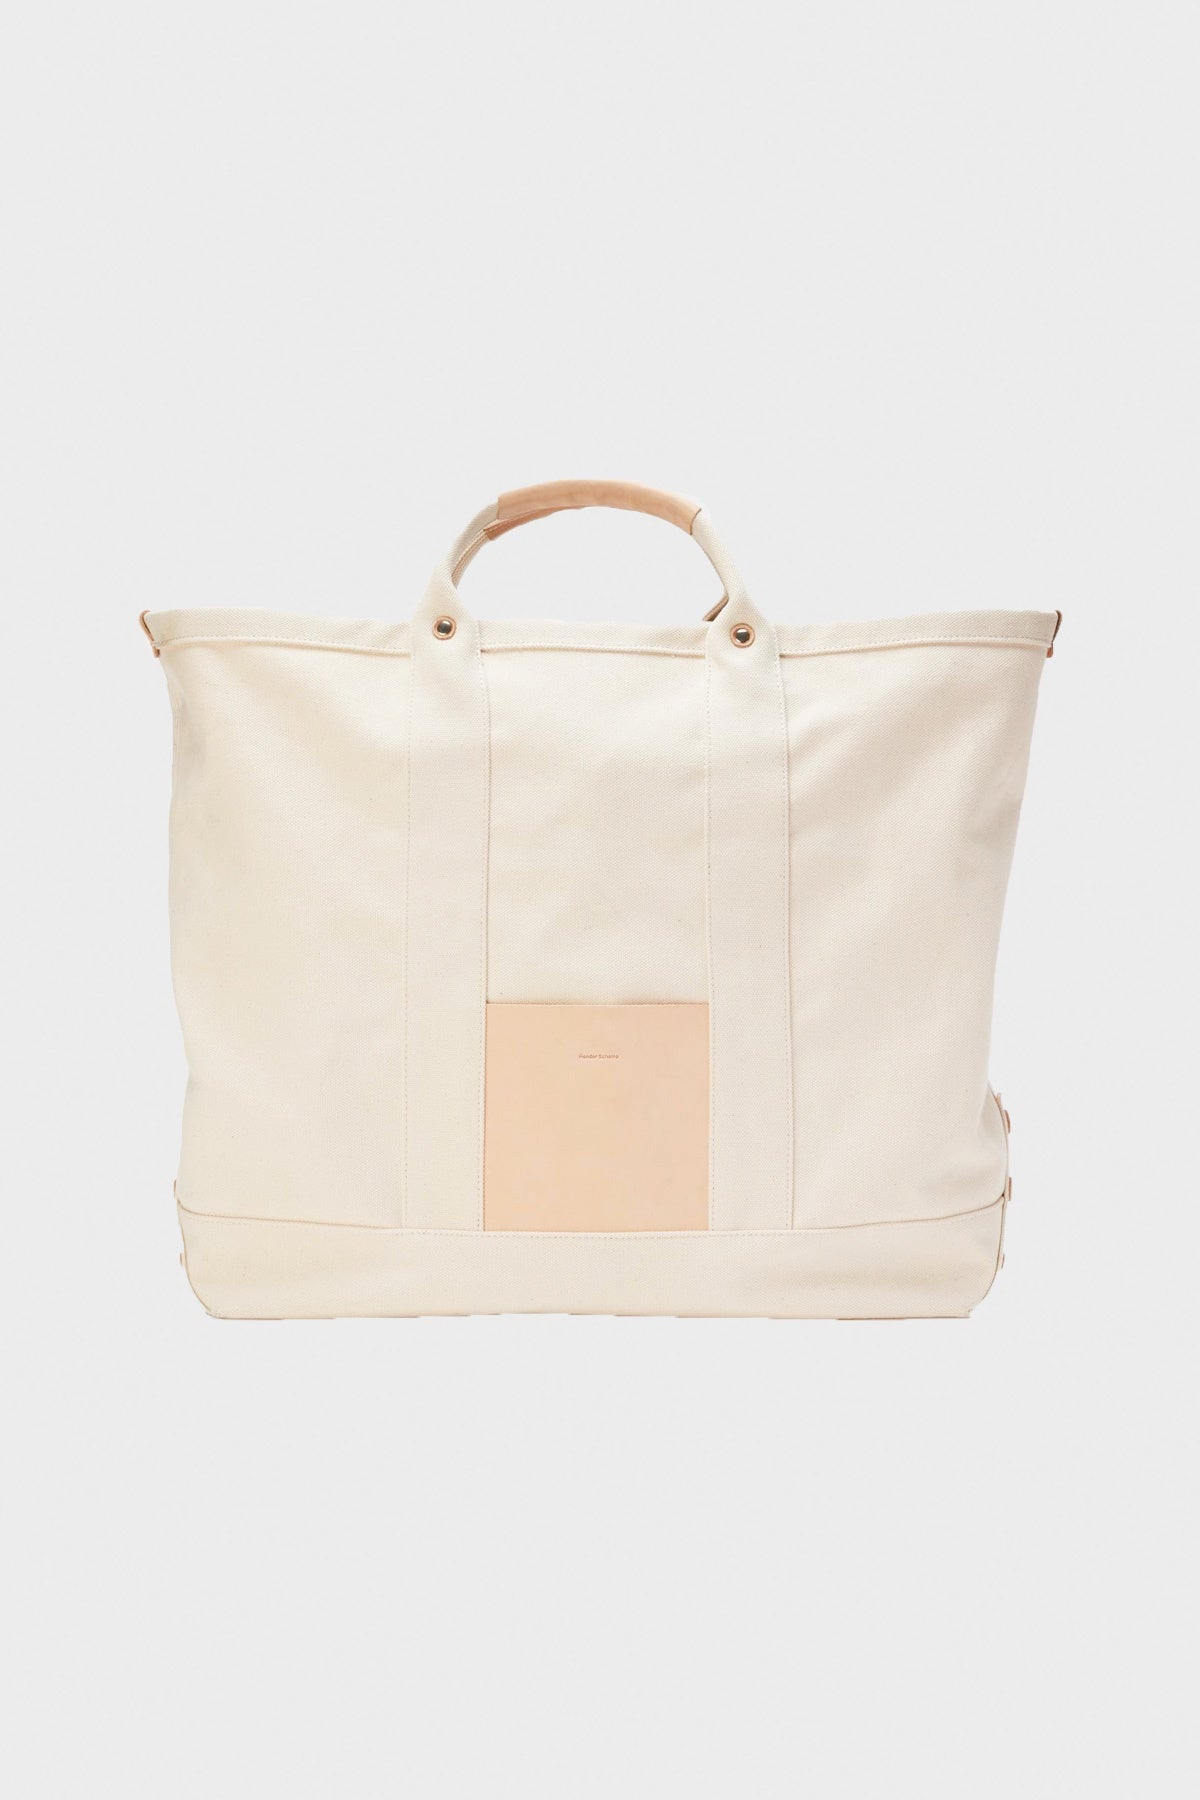 hender scheme Campus Bag Small - Natural